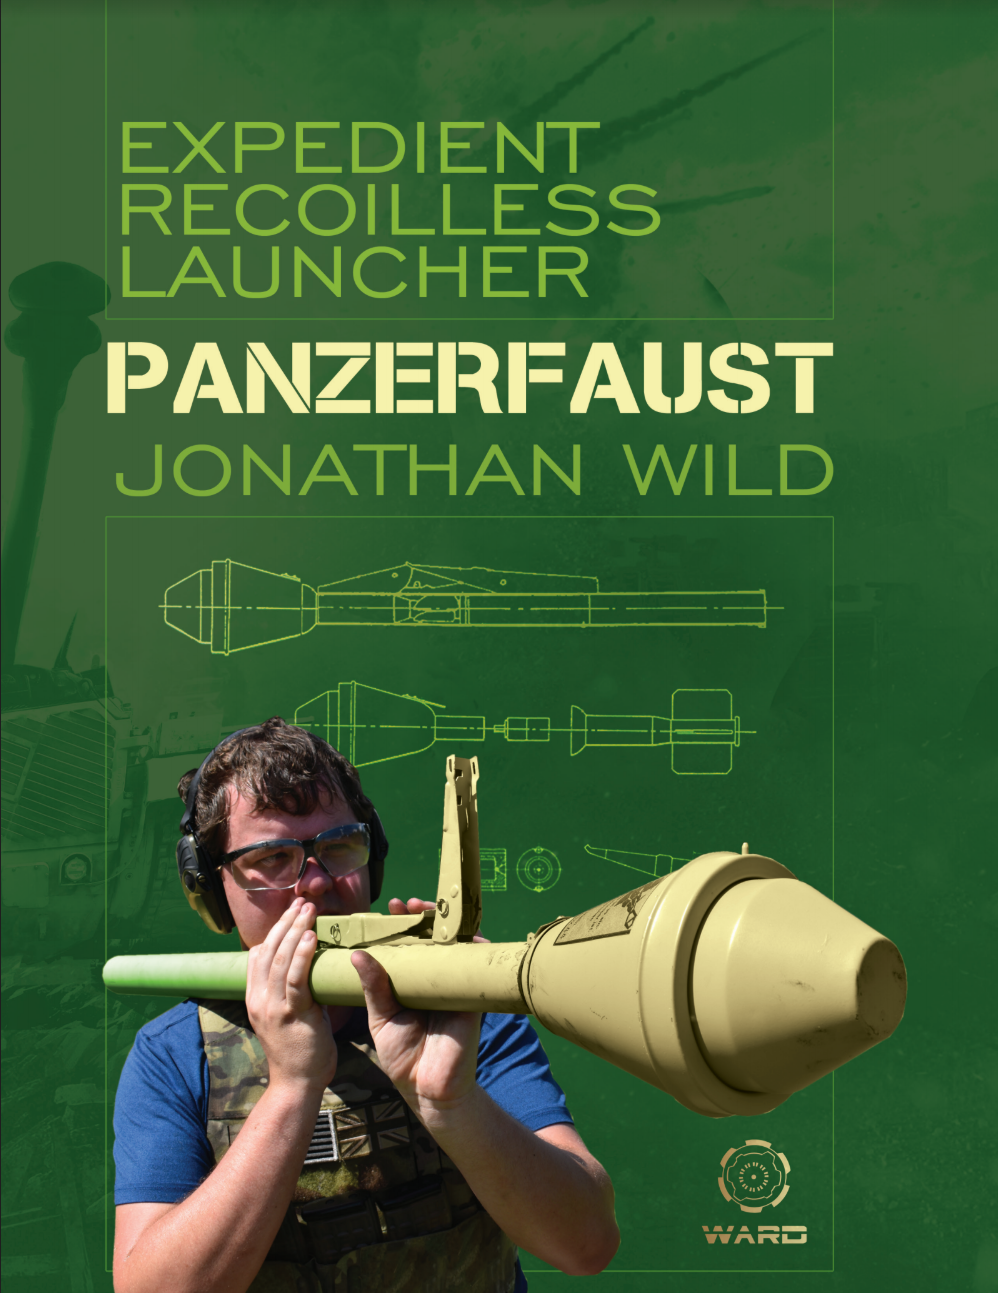 Expedient Recoilless Launcher Panzerfaust Book now Available on Amazon